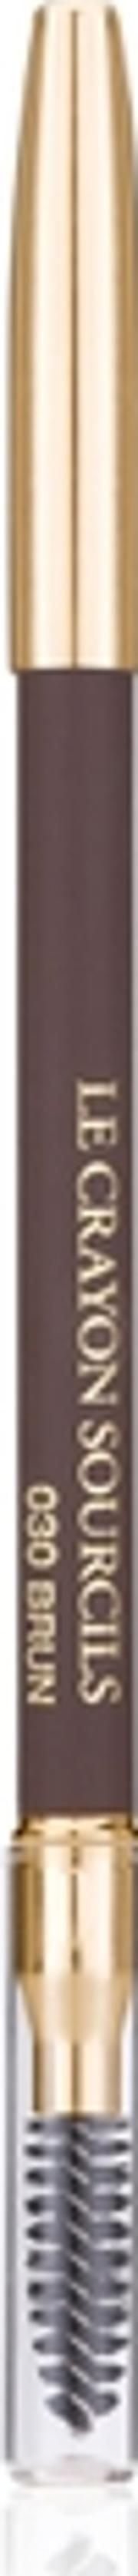 Lancome Le Crayon Sourcils Colour 030